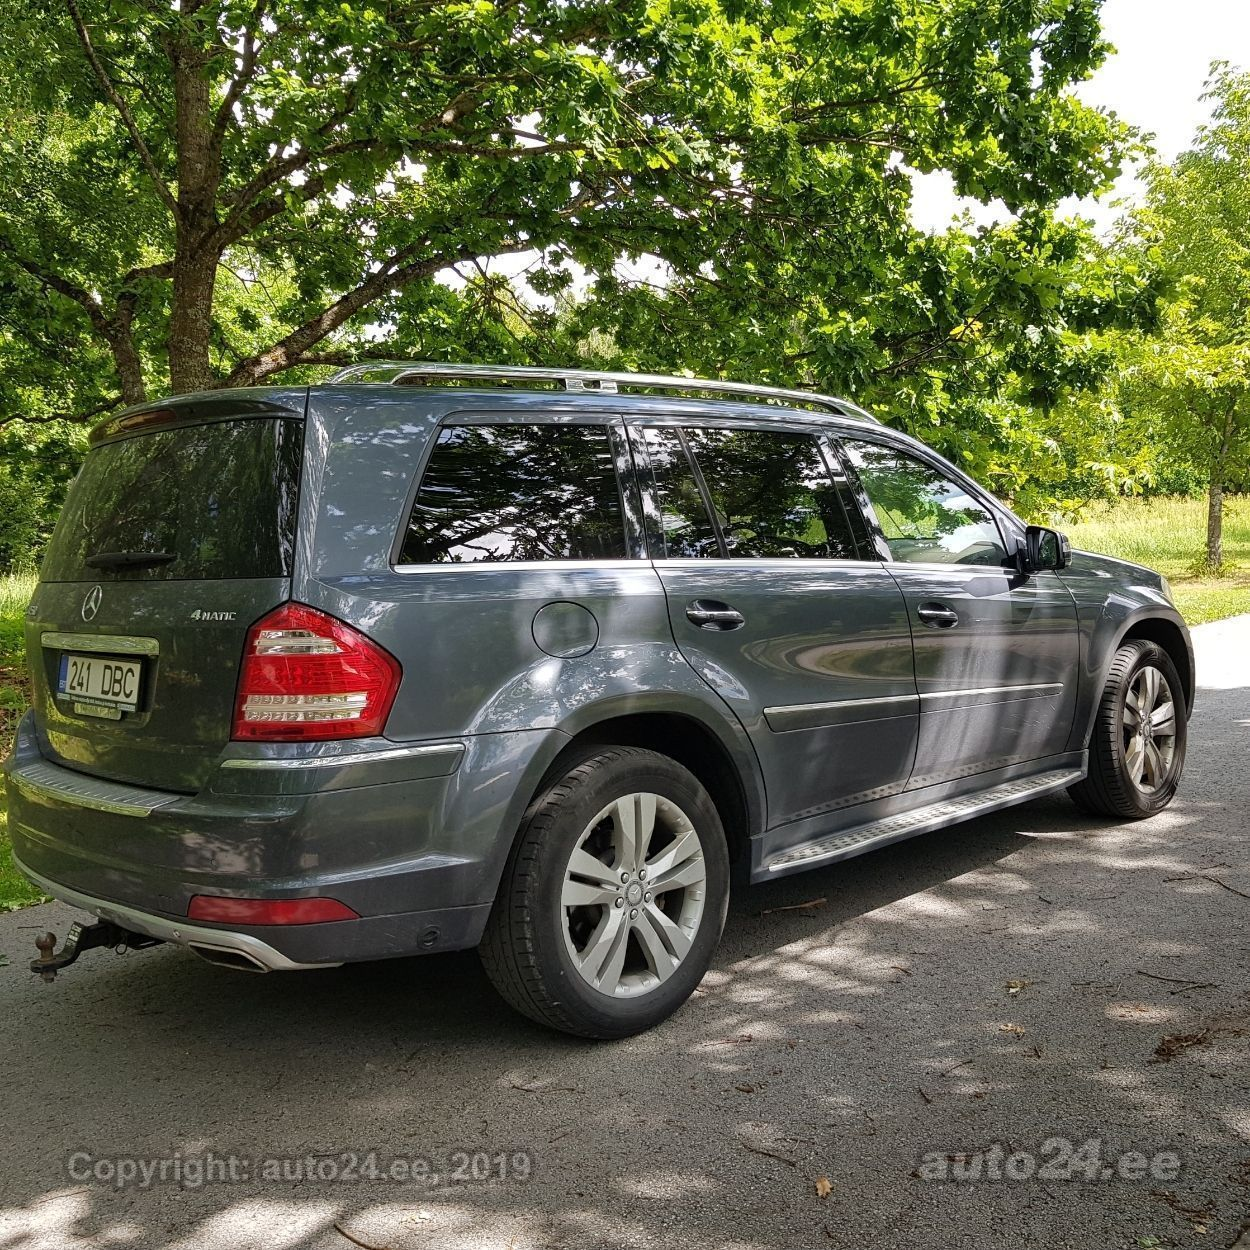 Mercedes-Benz GL 450 Facelift 4.7 250kW